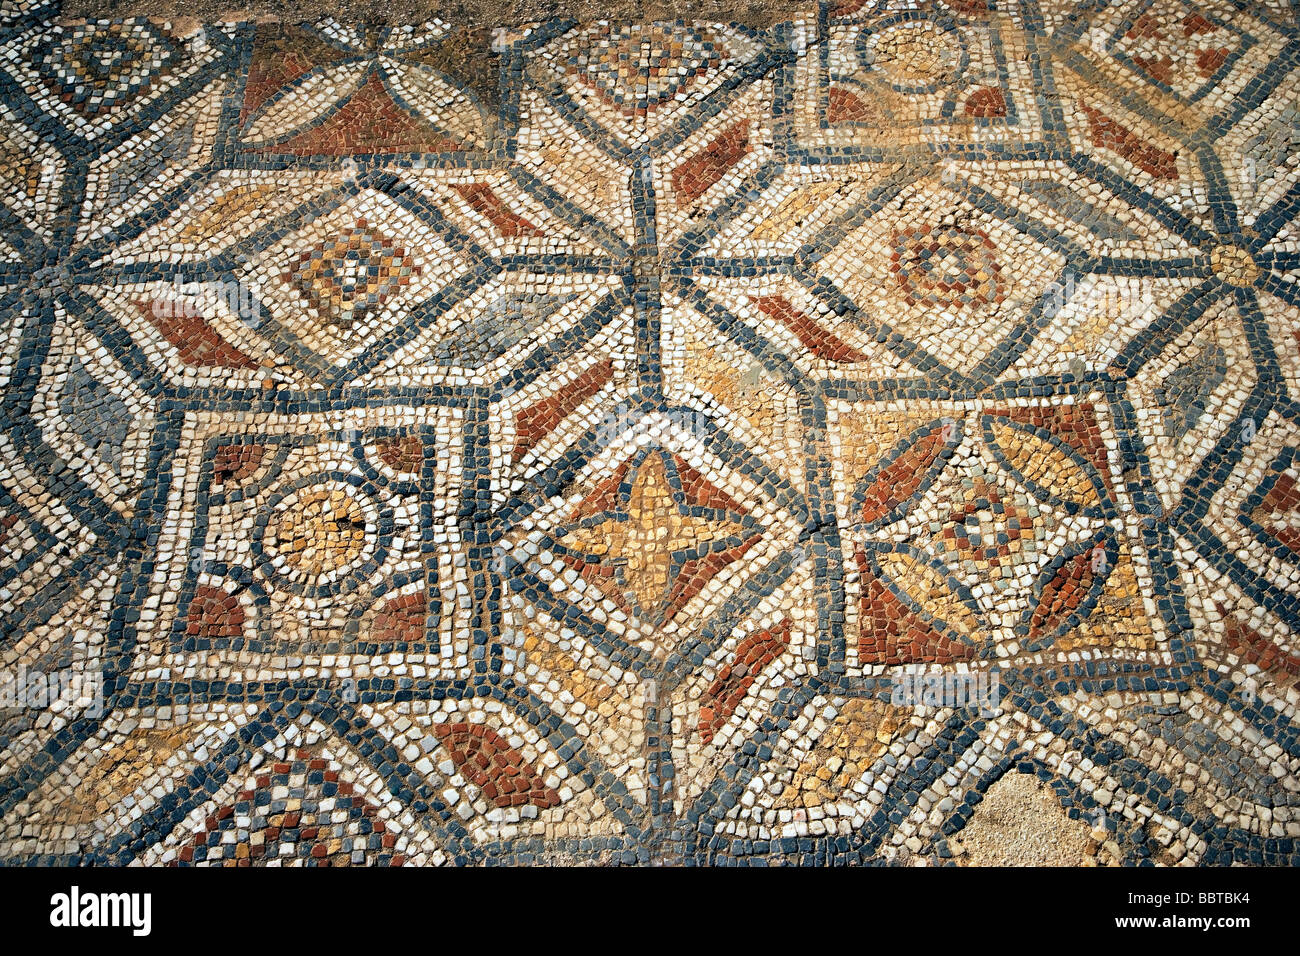 Roman Mosaic Tile Floor Ephesus Kusadasi Turkey Europe Stock